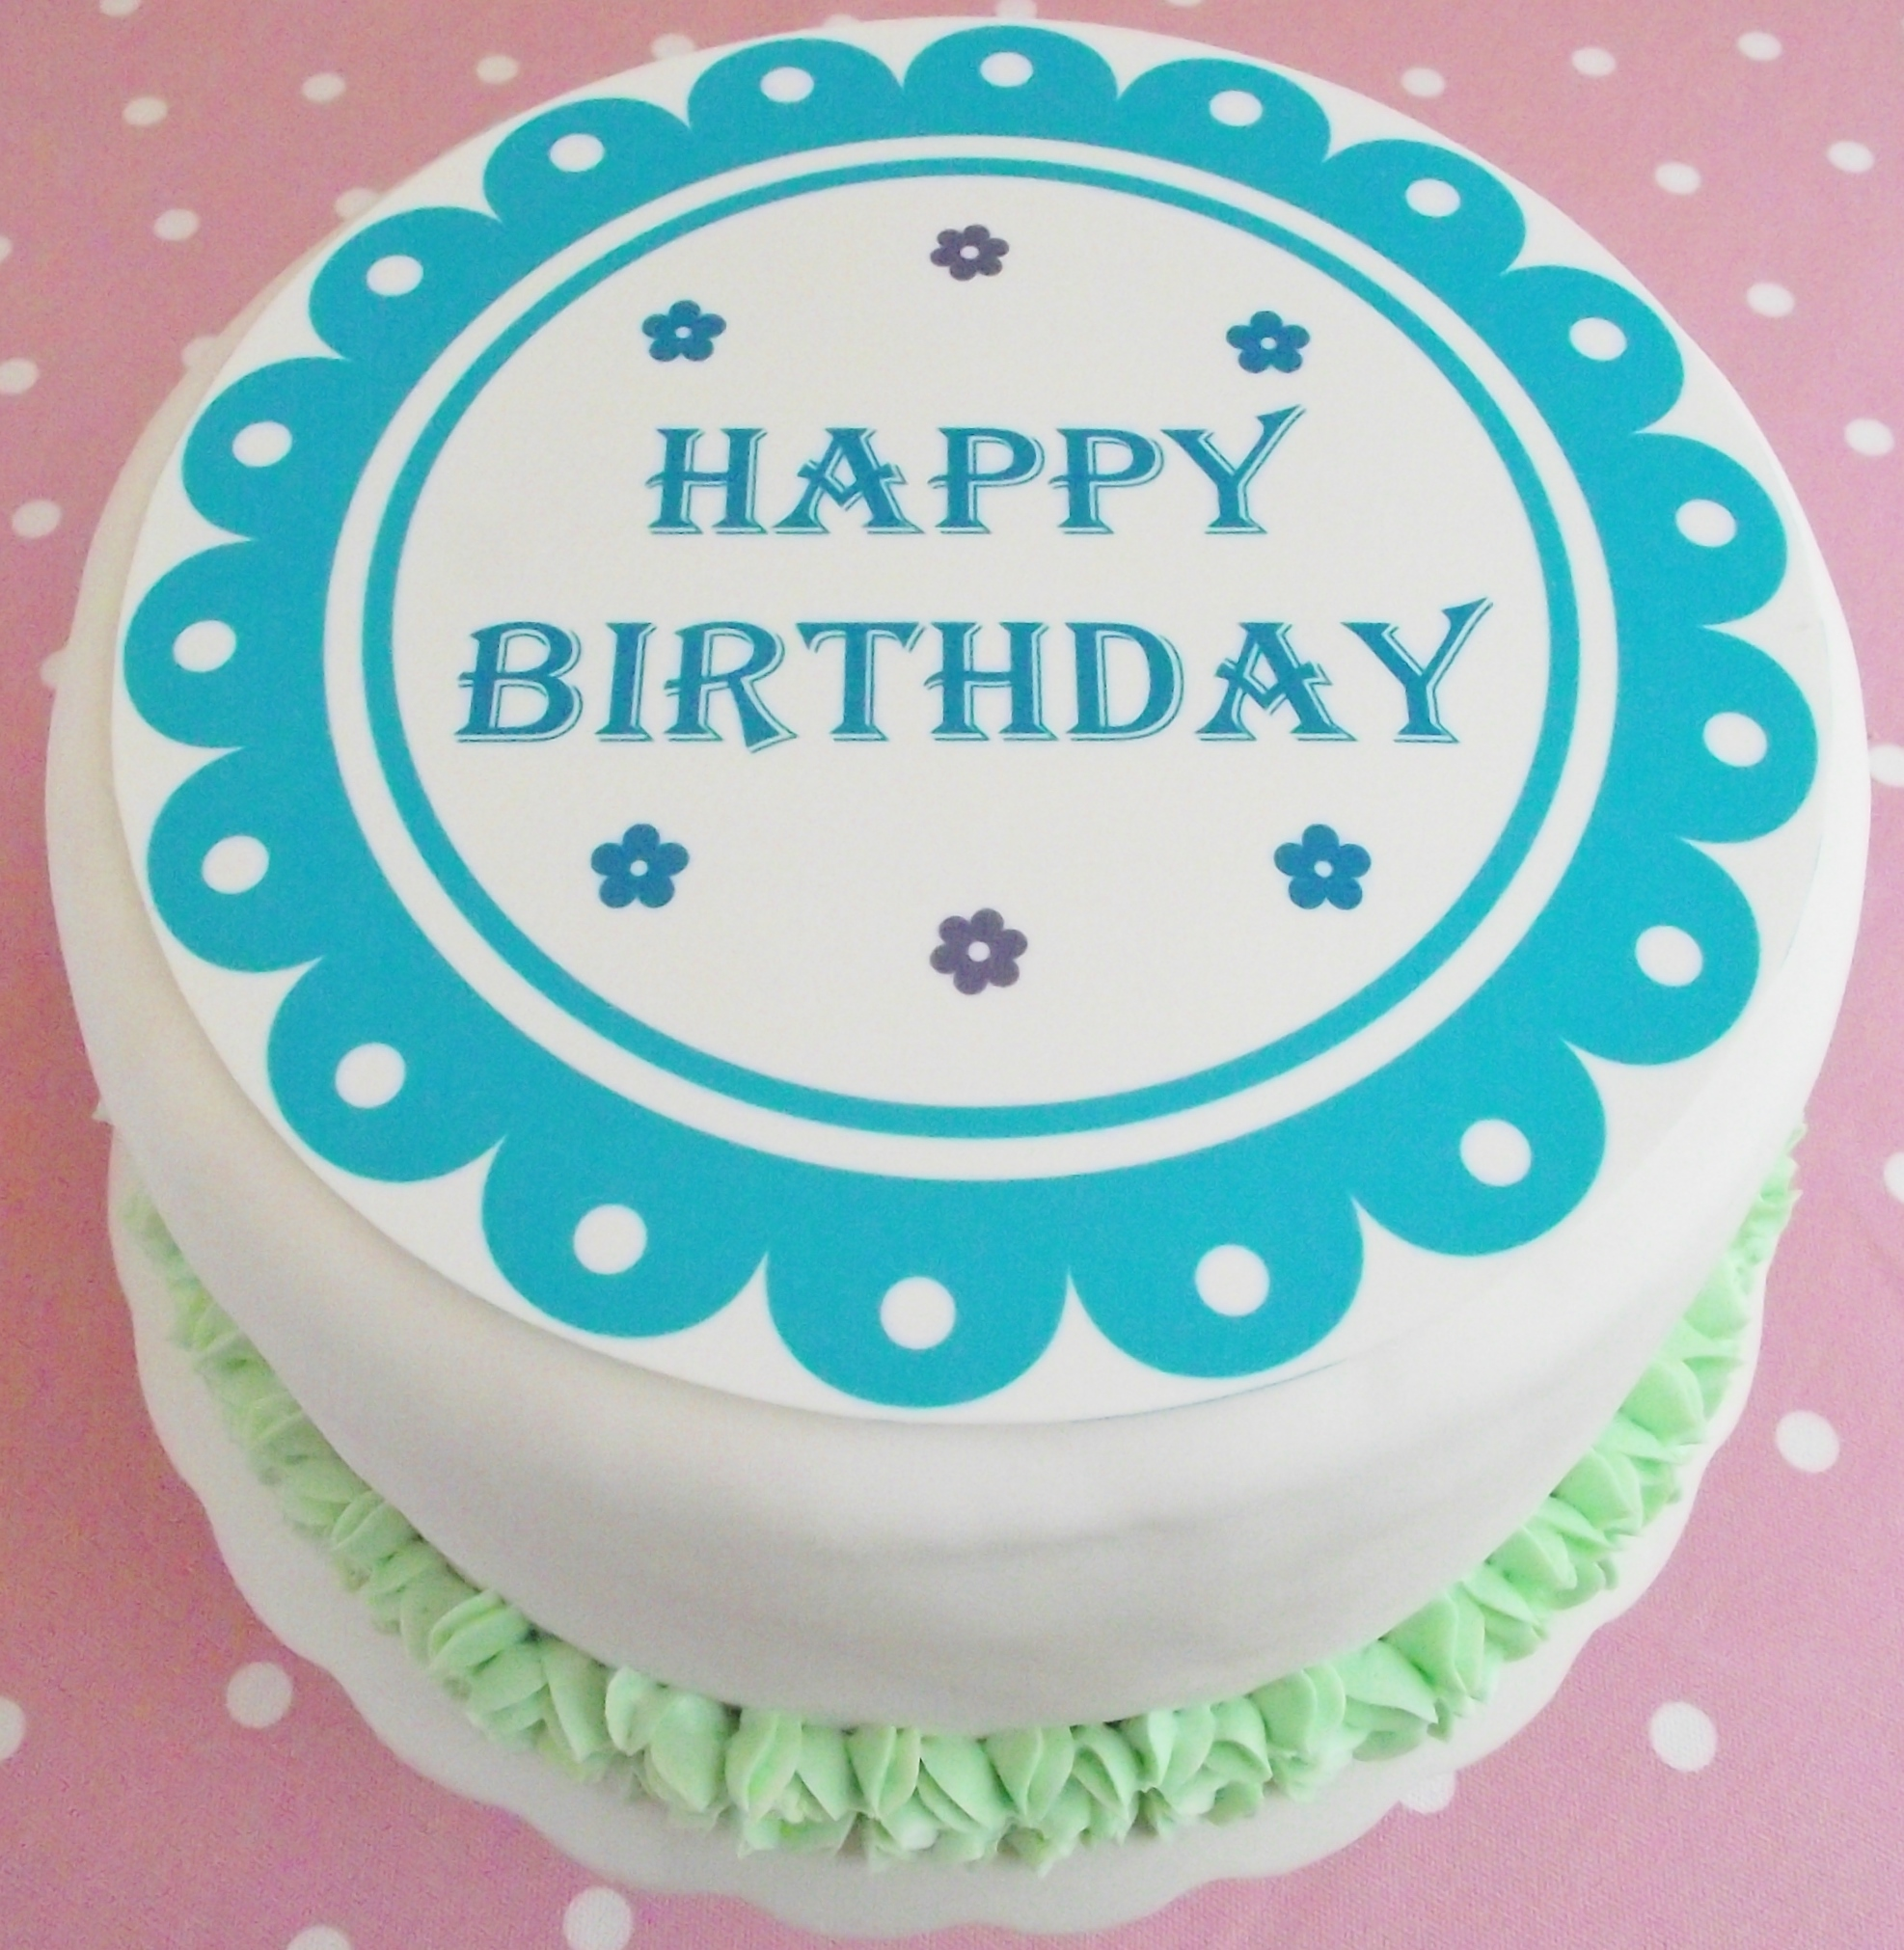 Cake Toppers Uk Birthdays : Cake Toppers :: Birthday Cake Toppers :: Adult Birthdays ...